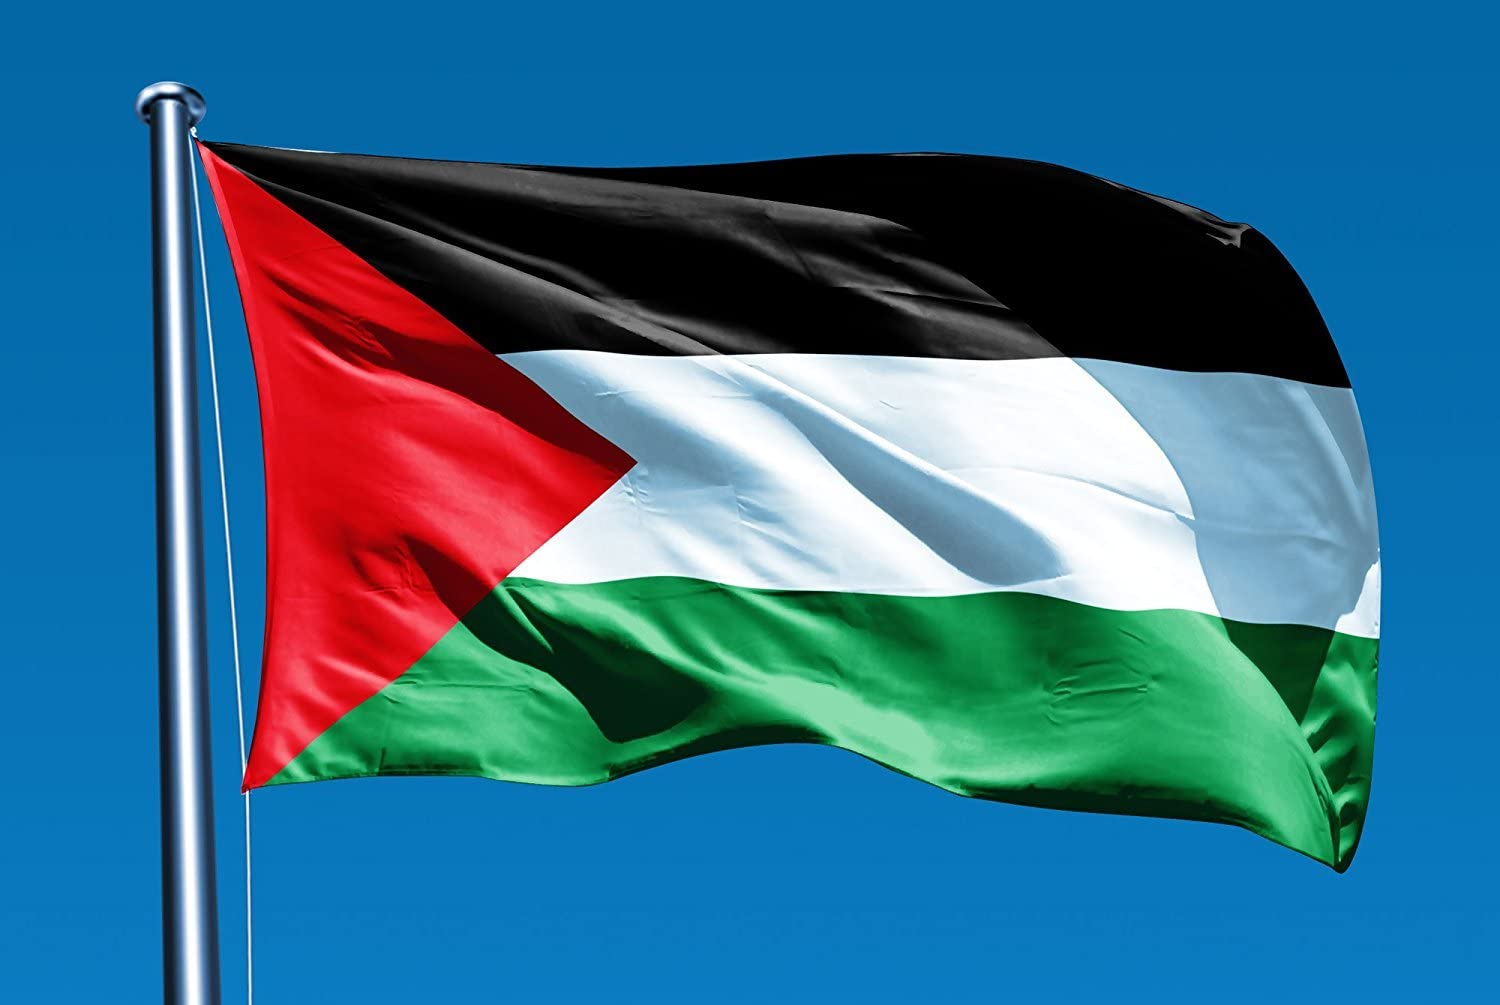 Amazon.com : Flag of Palestine 3x5 ft Flags 3 x 5 Palestinian NEW ...